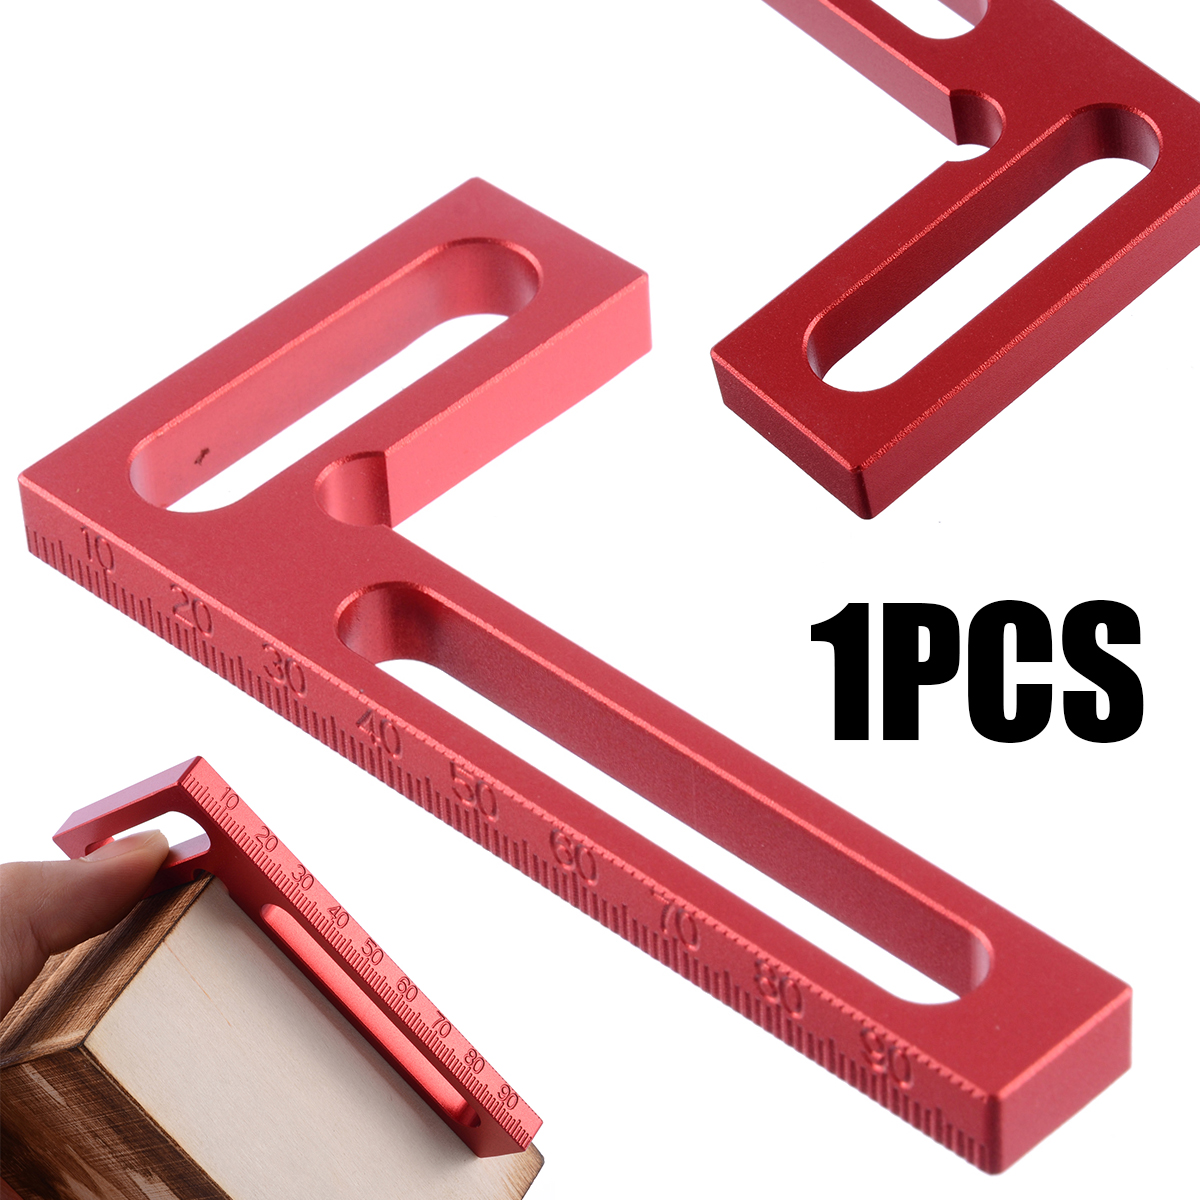 1pc 90 Degree Clamping Square Aluminium Alloy L-Square Positioning Clamps Woodworking Carpenter Measuring Tools 100*50*8mm